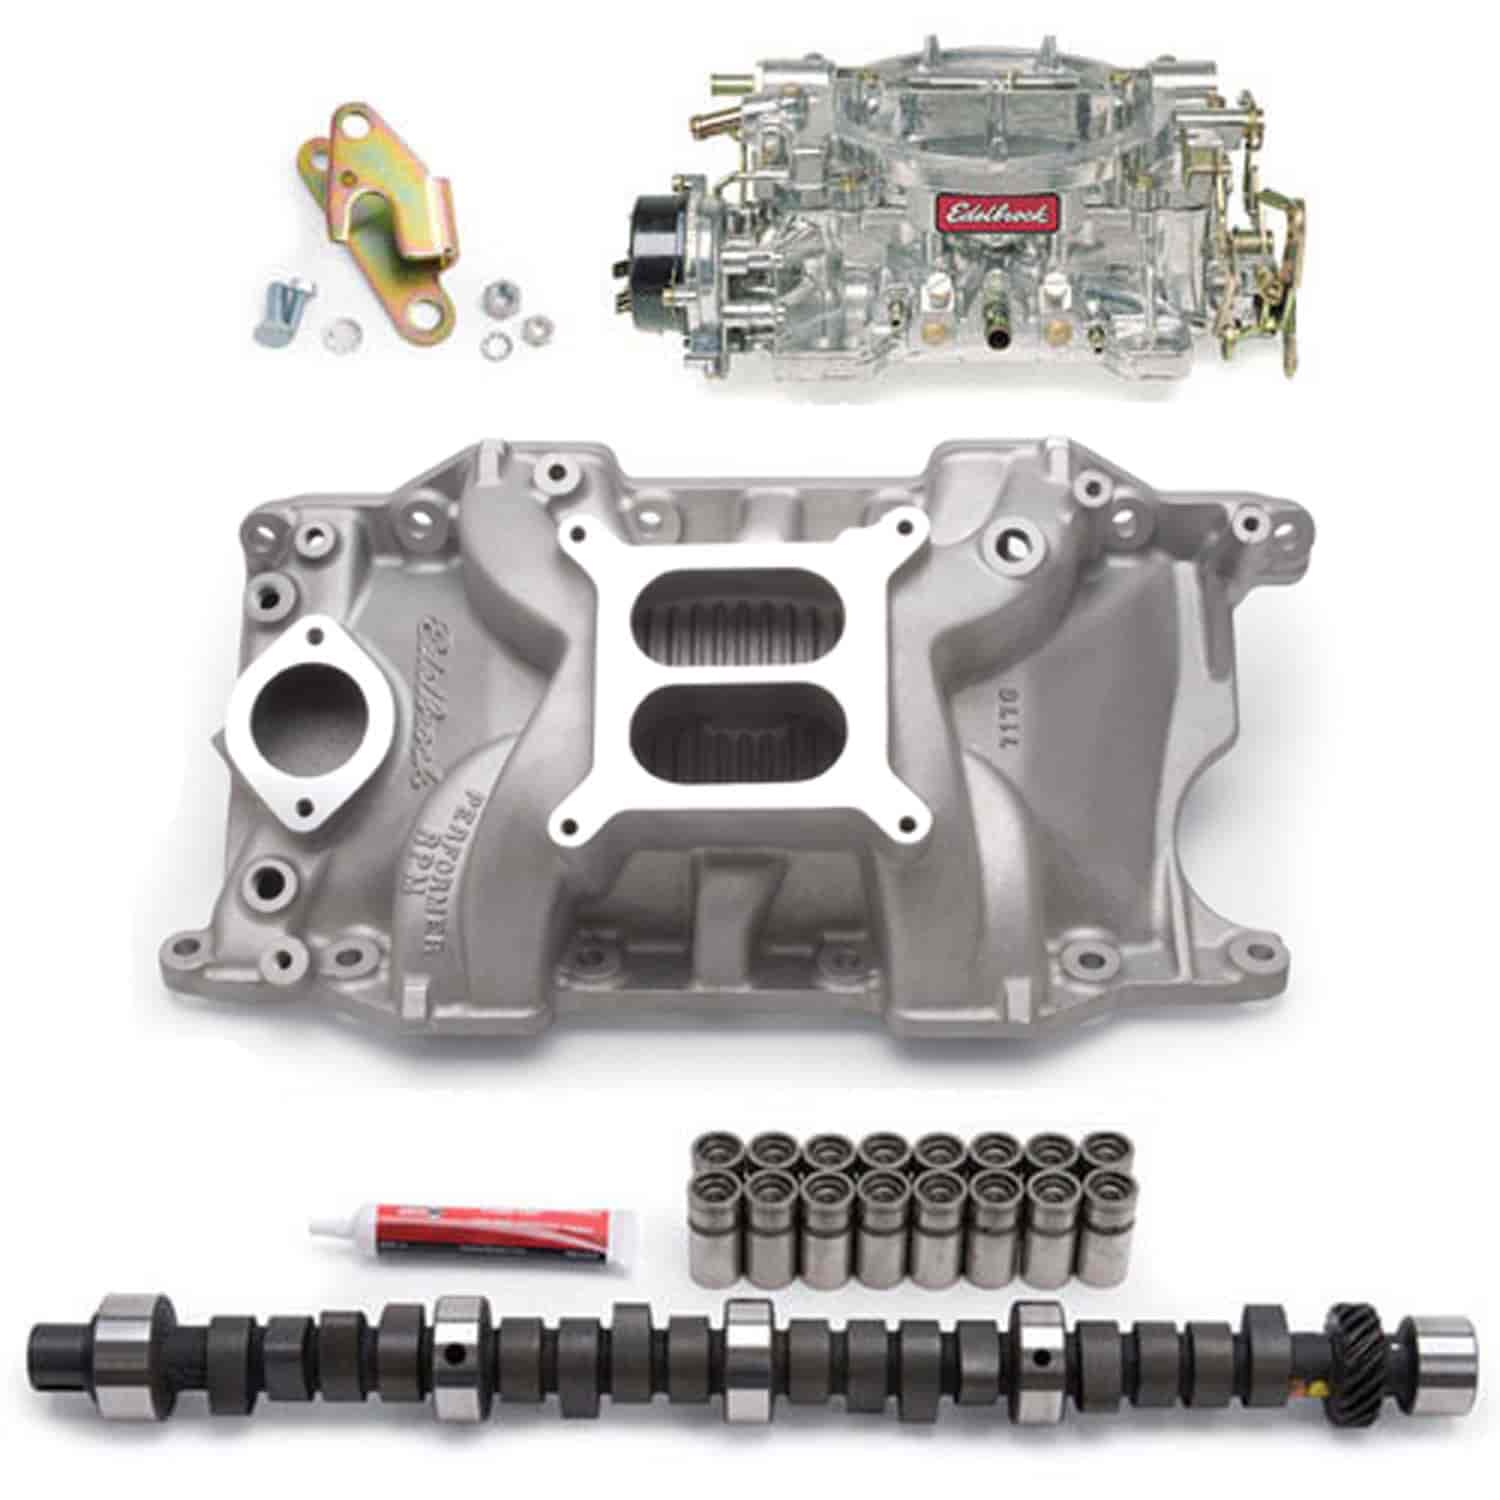 Edelbrock 7176PK - Edelbrock Performer RPM Manifolds & Kits for Chrysler